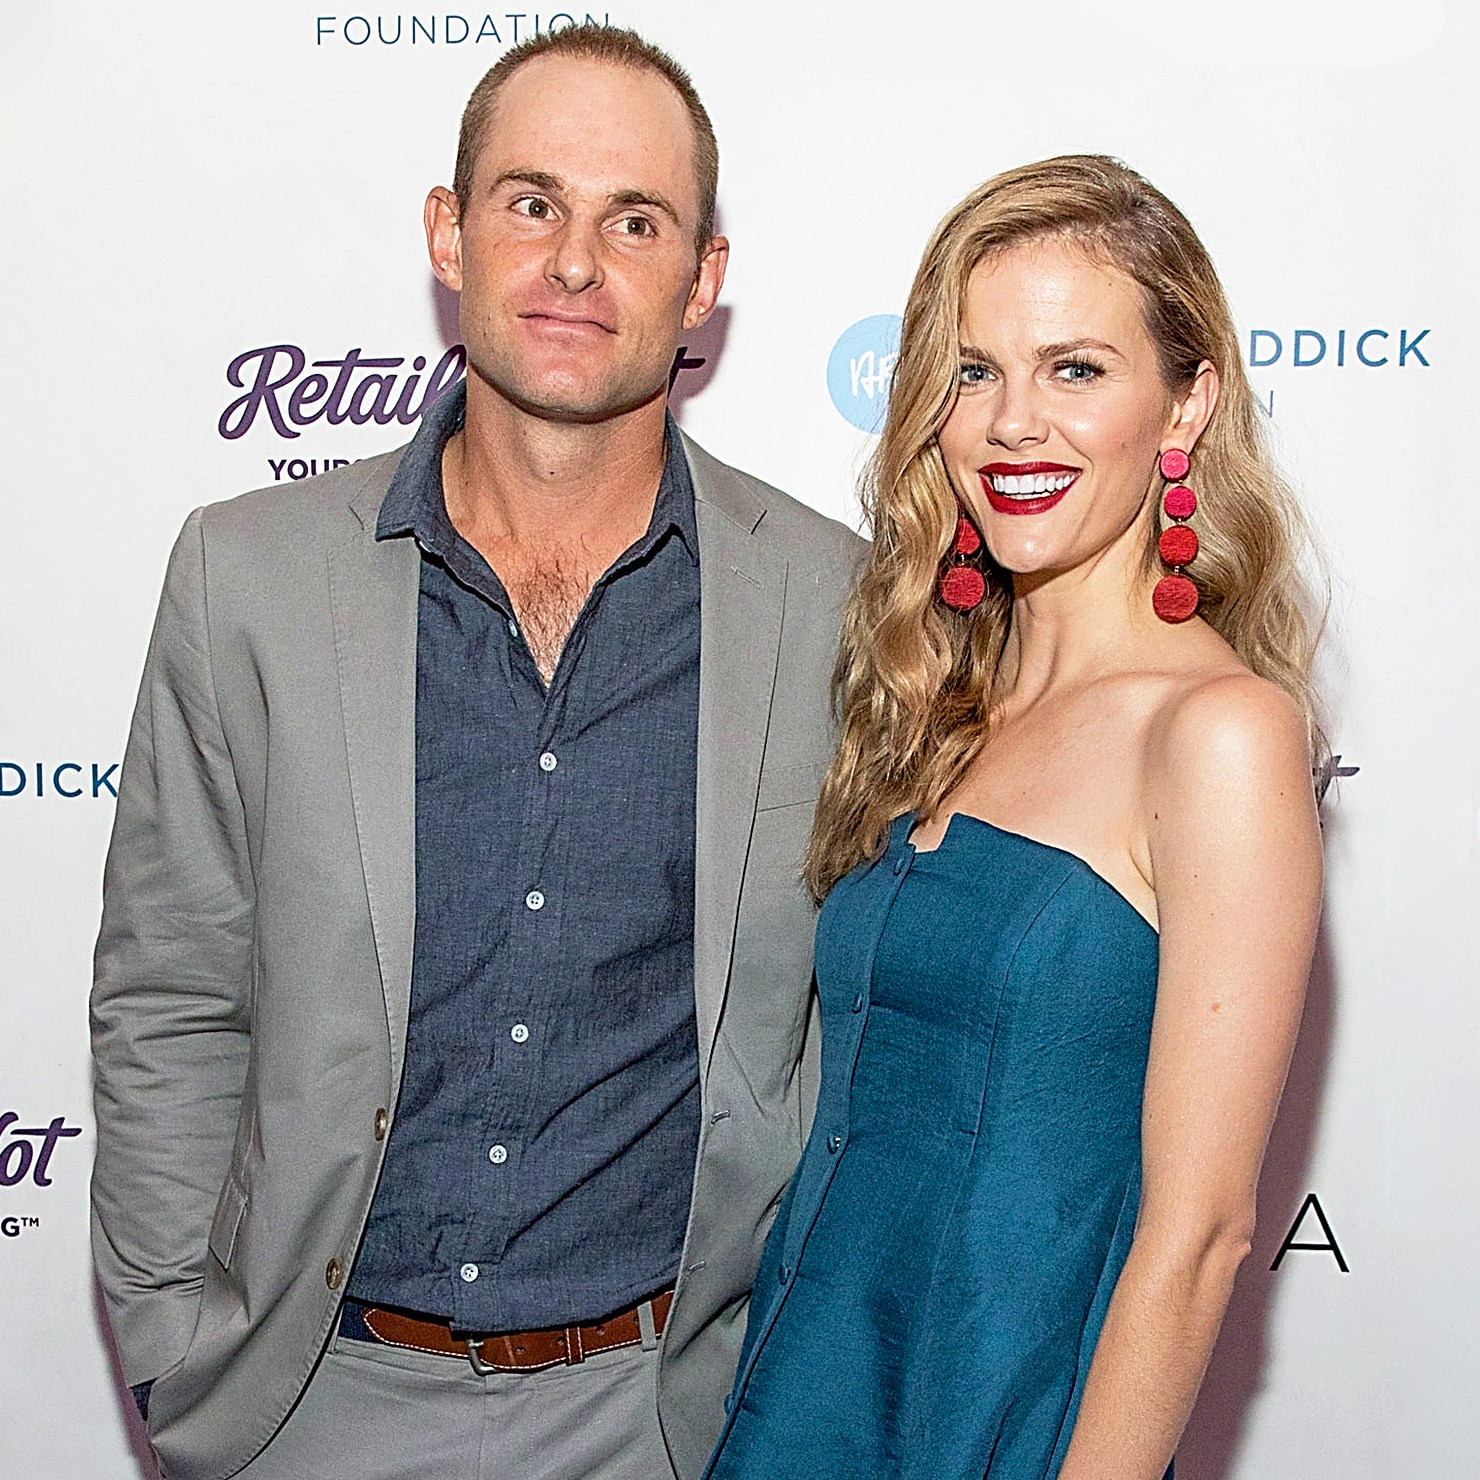 Andy Roddick and Brooklyn Decker attend the 11th Annual Andy Roddick Foundation Gala at ACL Live on November 18, 2016 in Austin, Texas.